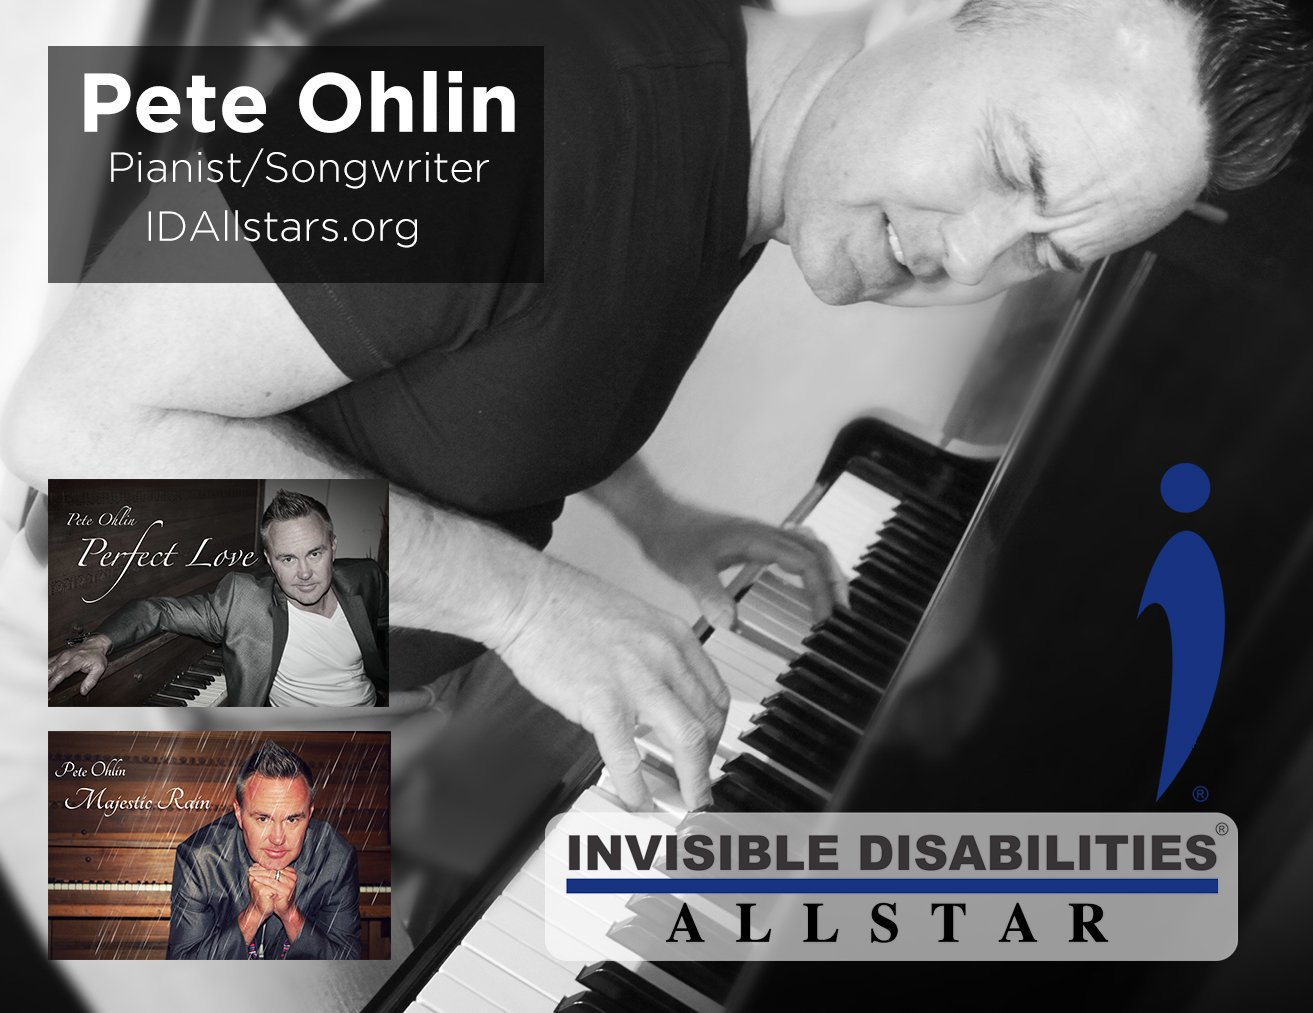 Pete Ohlin Invisible Disabilities Allstar